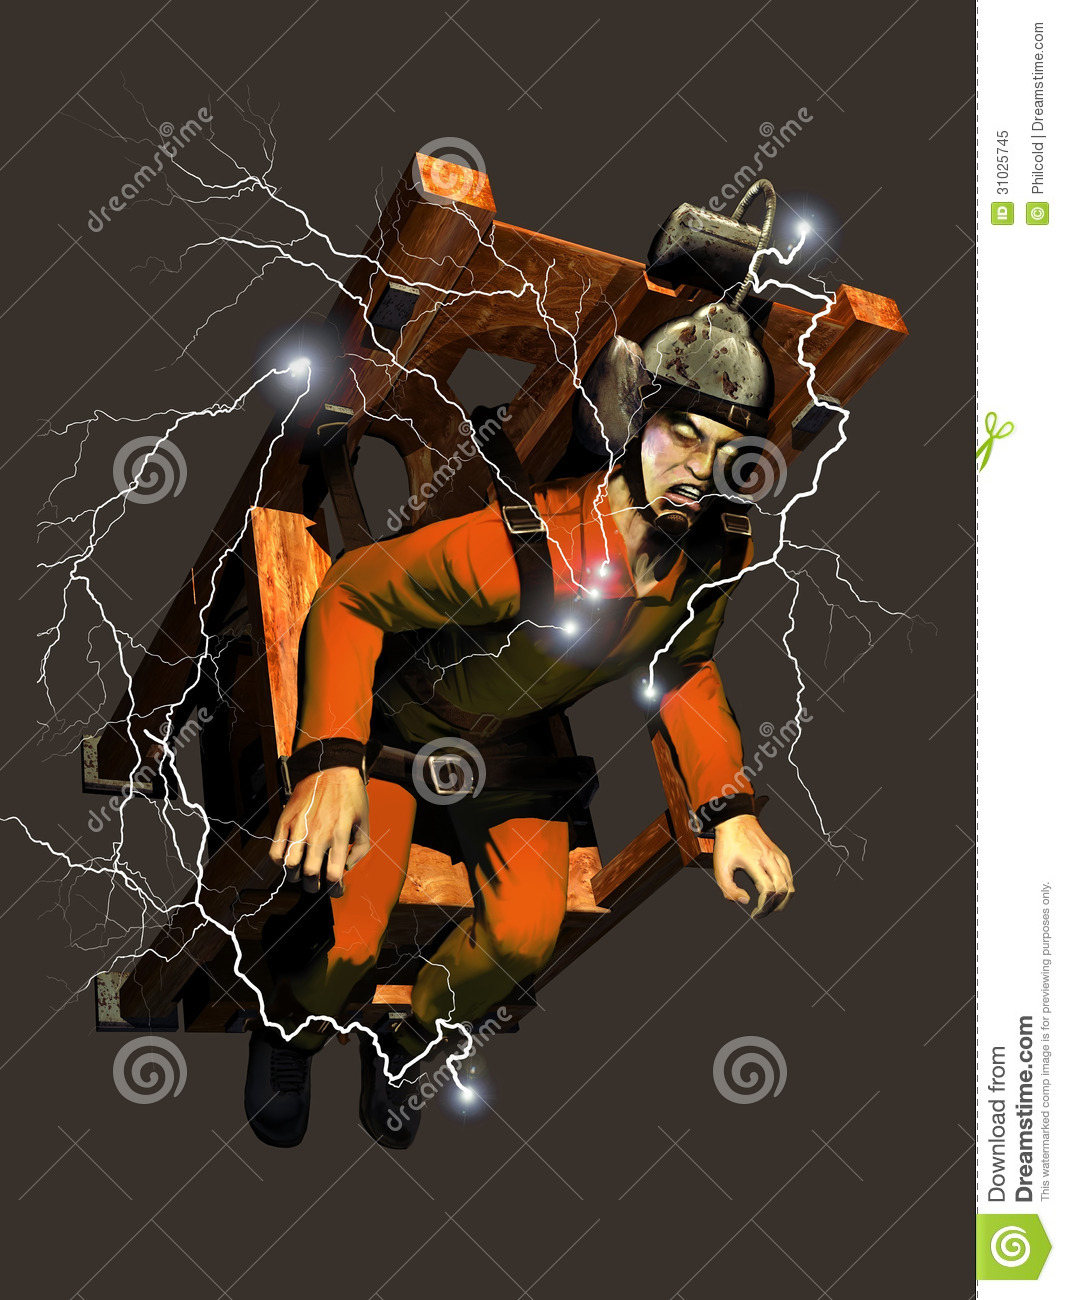 electric chair execution gone wrong squirrel feeder killer stock illustration image of horror